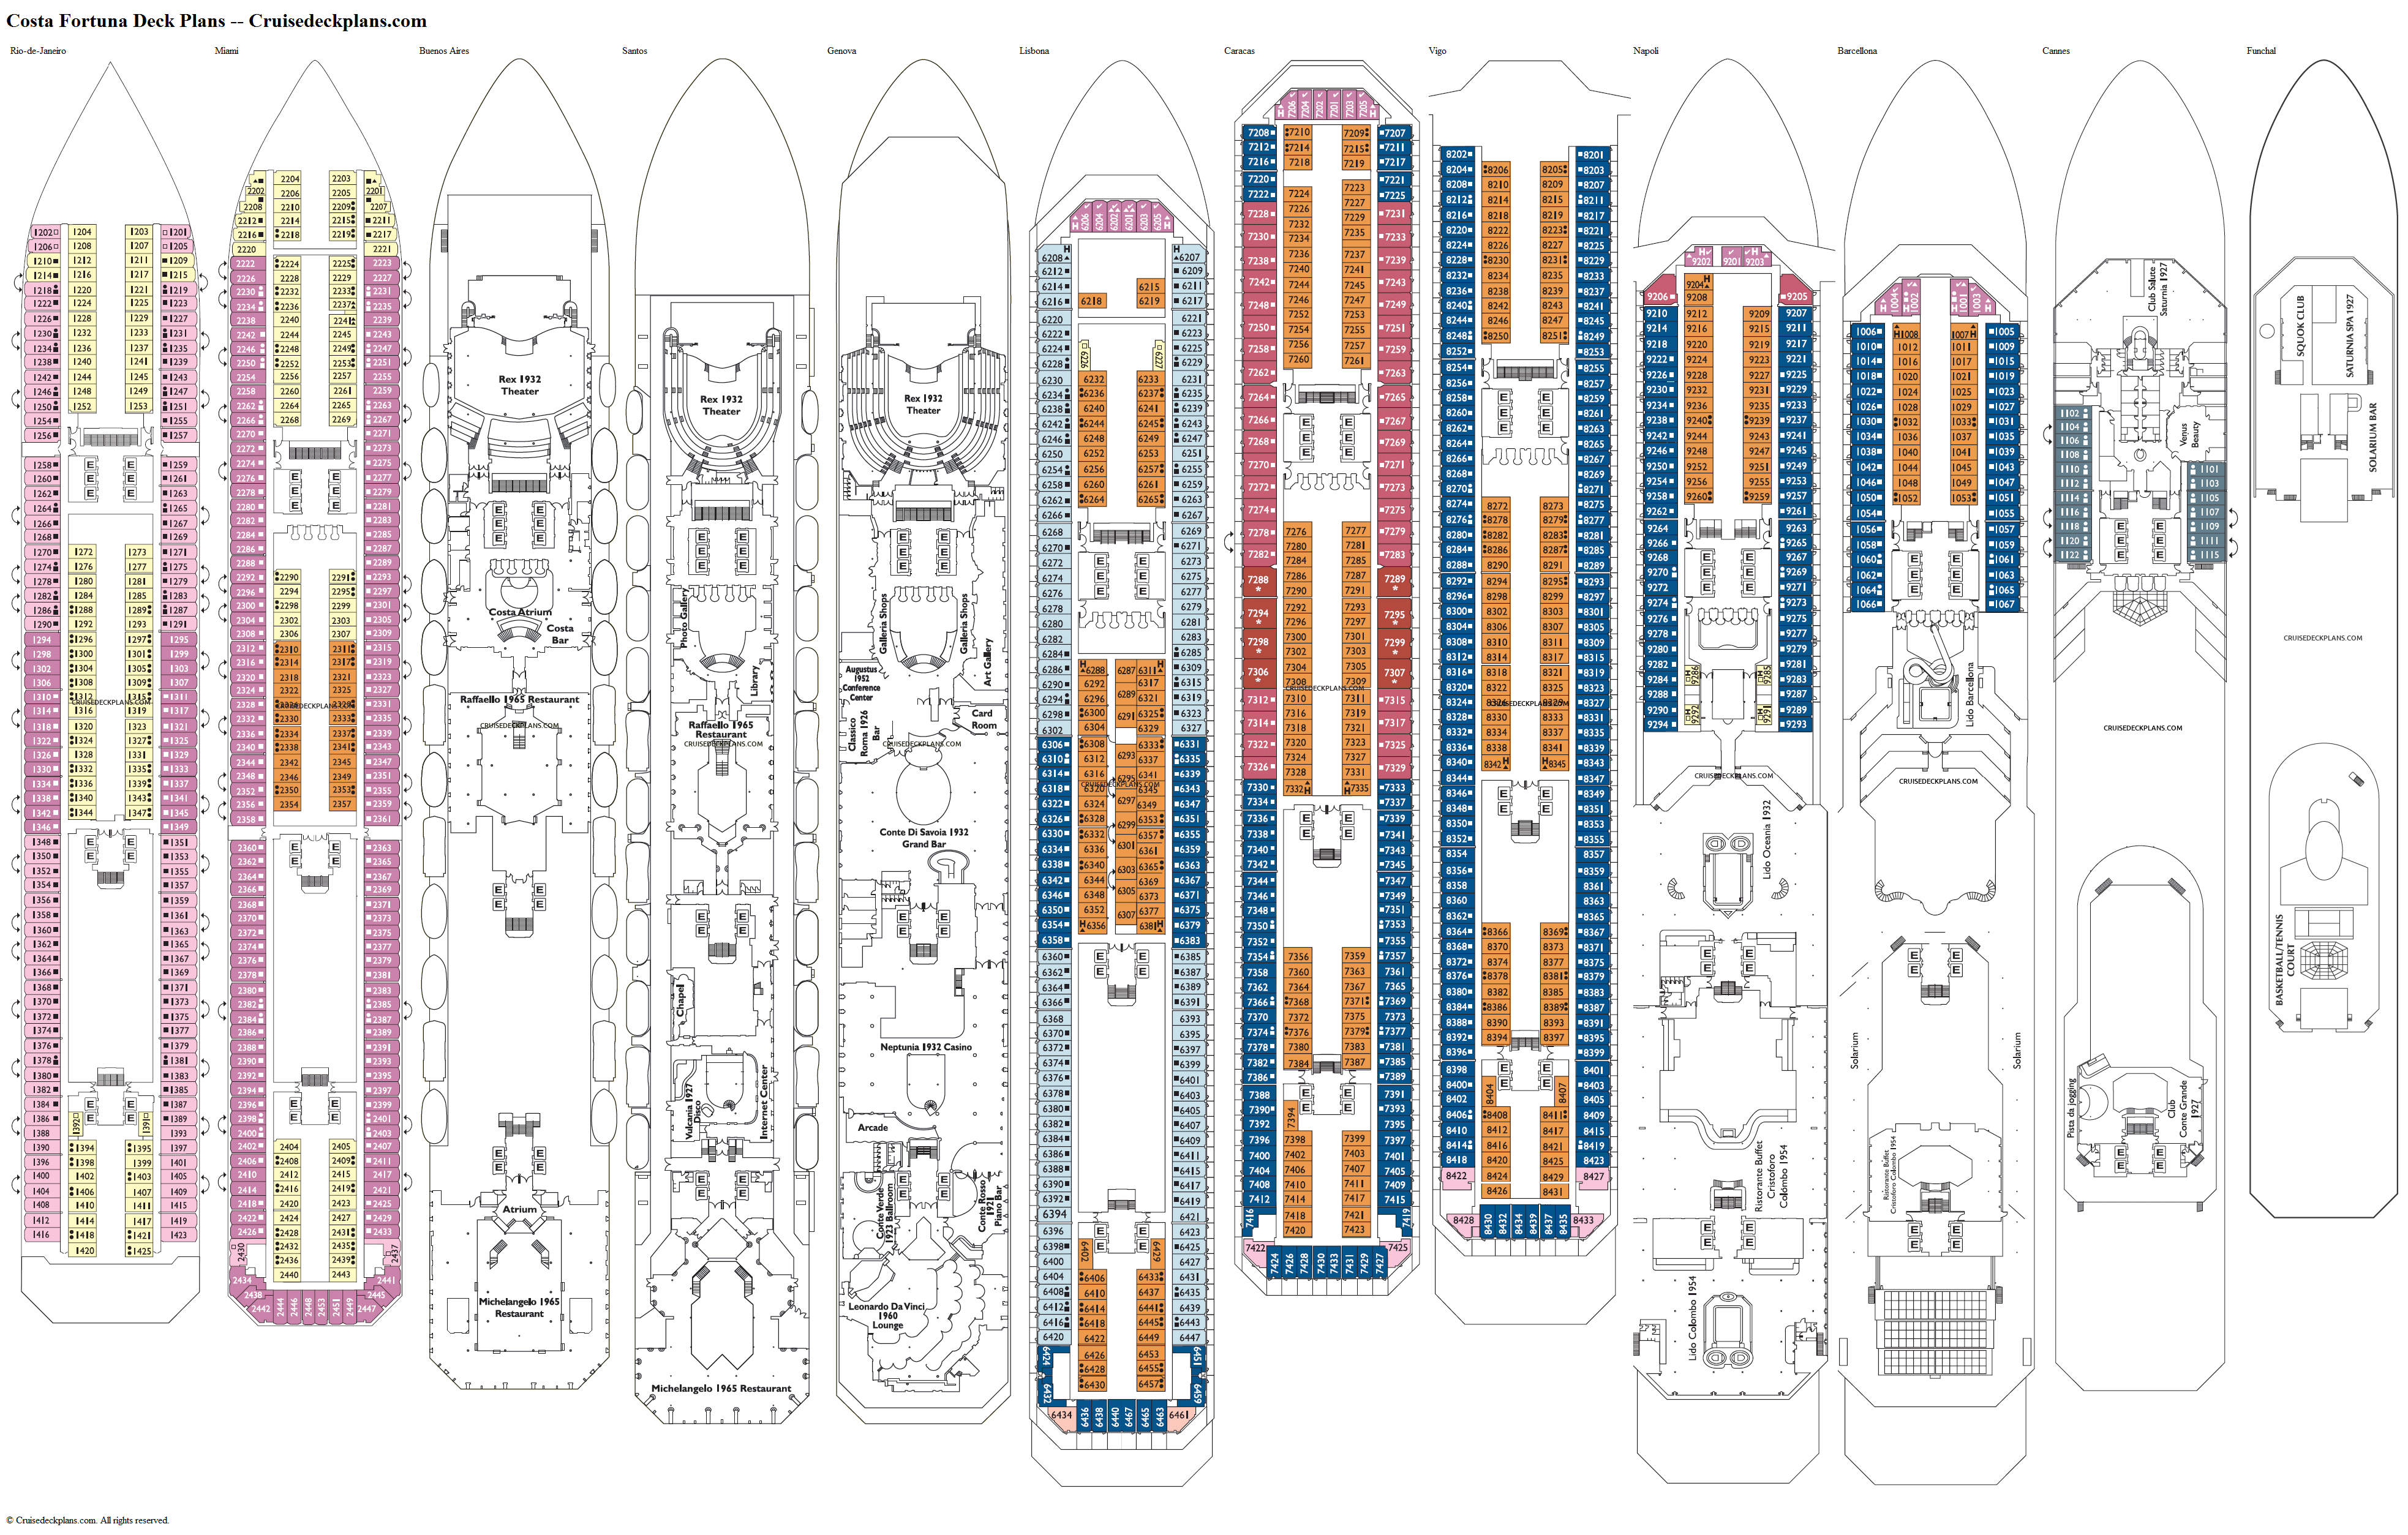 Costa Fortuna deck plans image